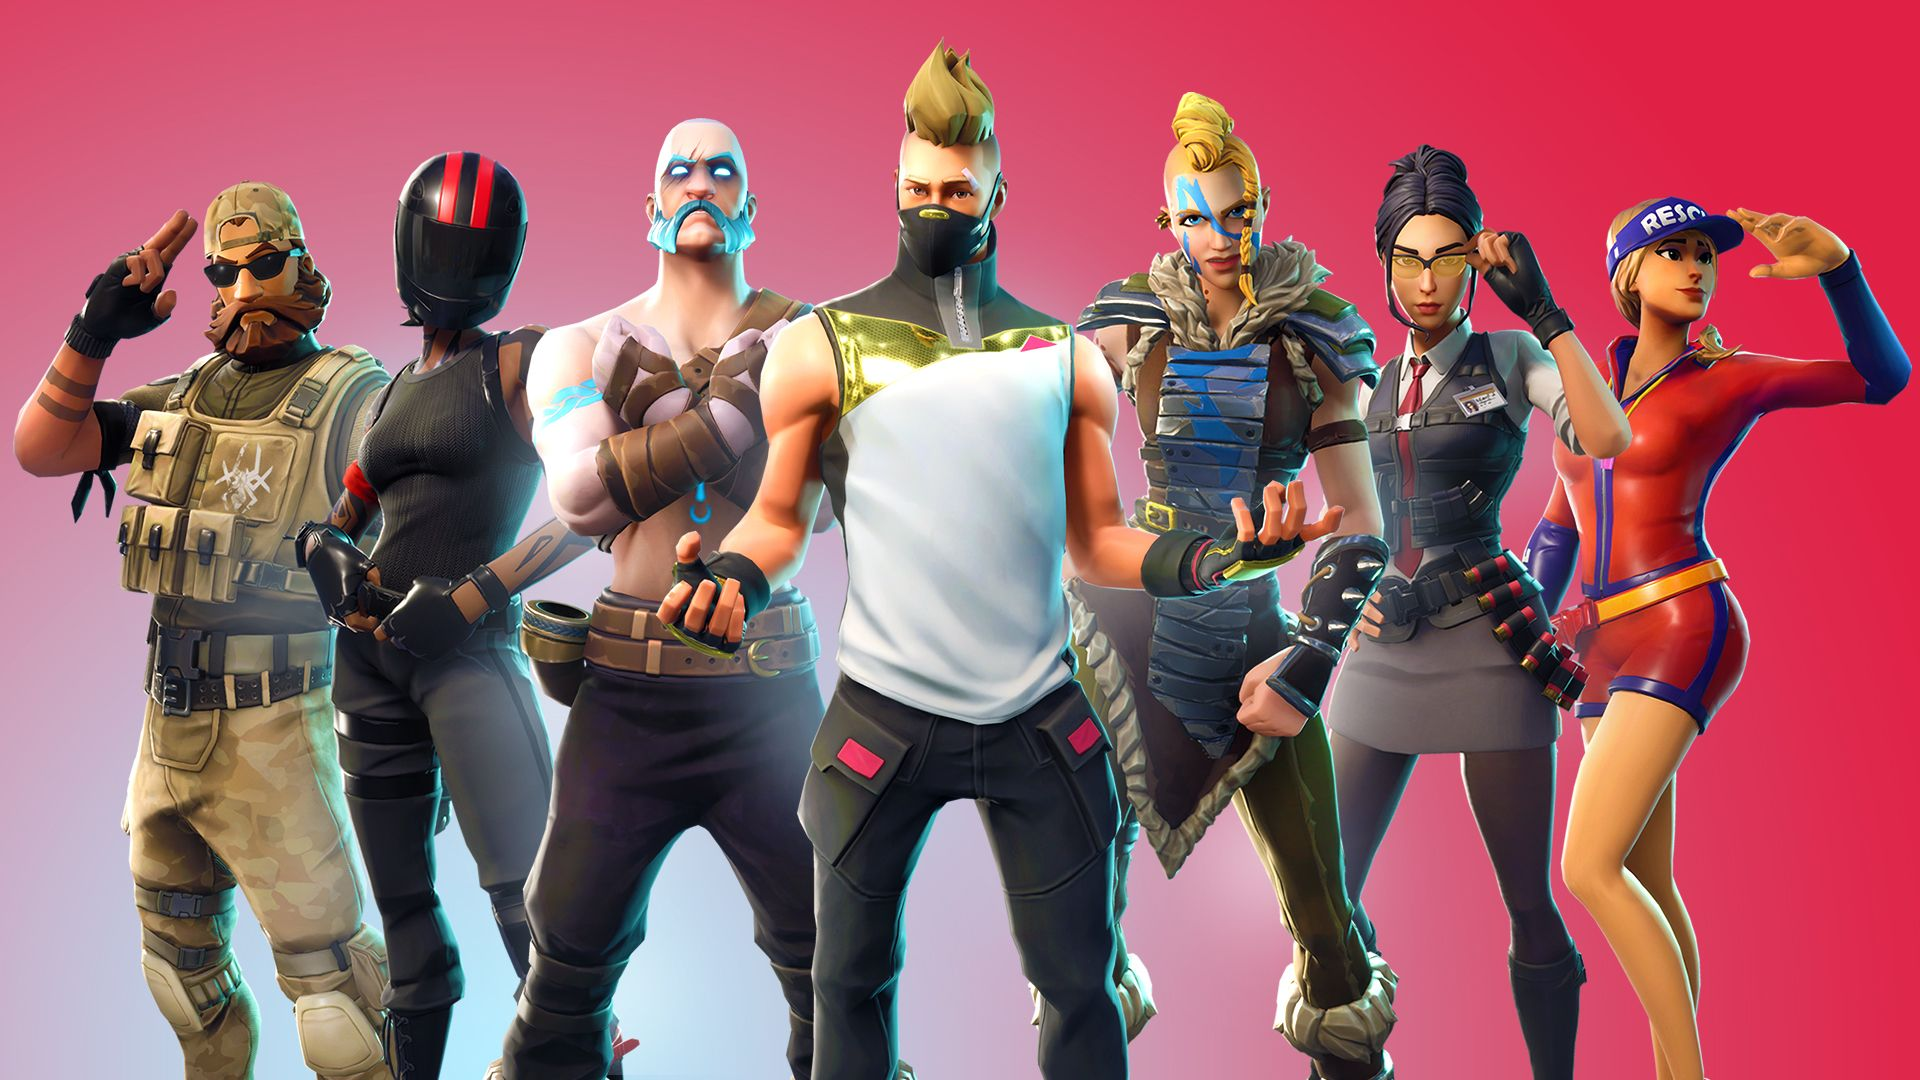 Fortnite Season 5 Wallpaper 1920x1080 Need Trendy Iphone7 Iphone7plus Case Check Out Https Ift Tt 2itgto5 Fortnite Epic Games Battle Royale Game